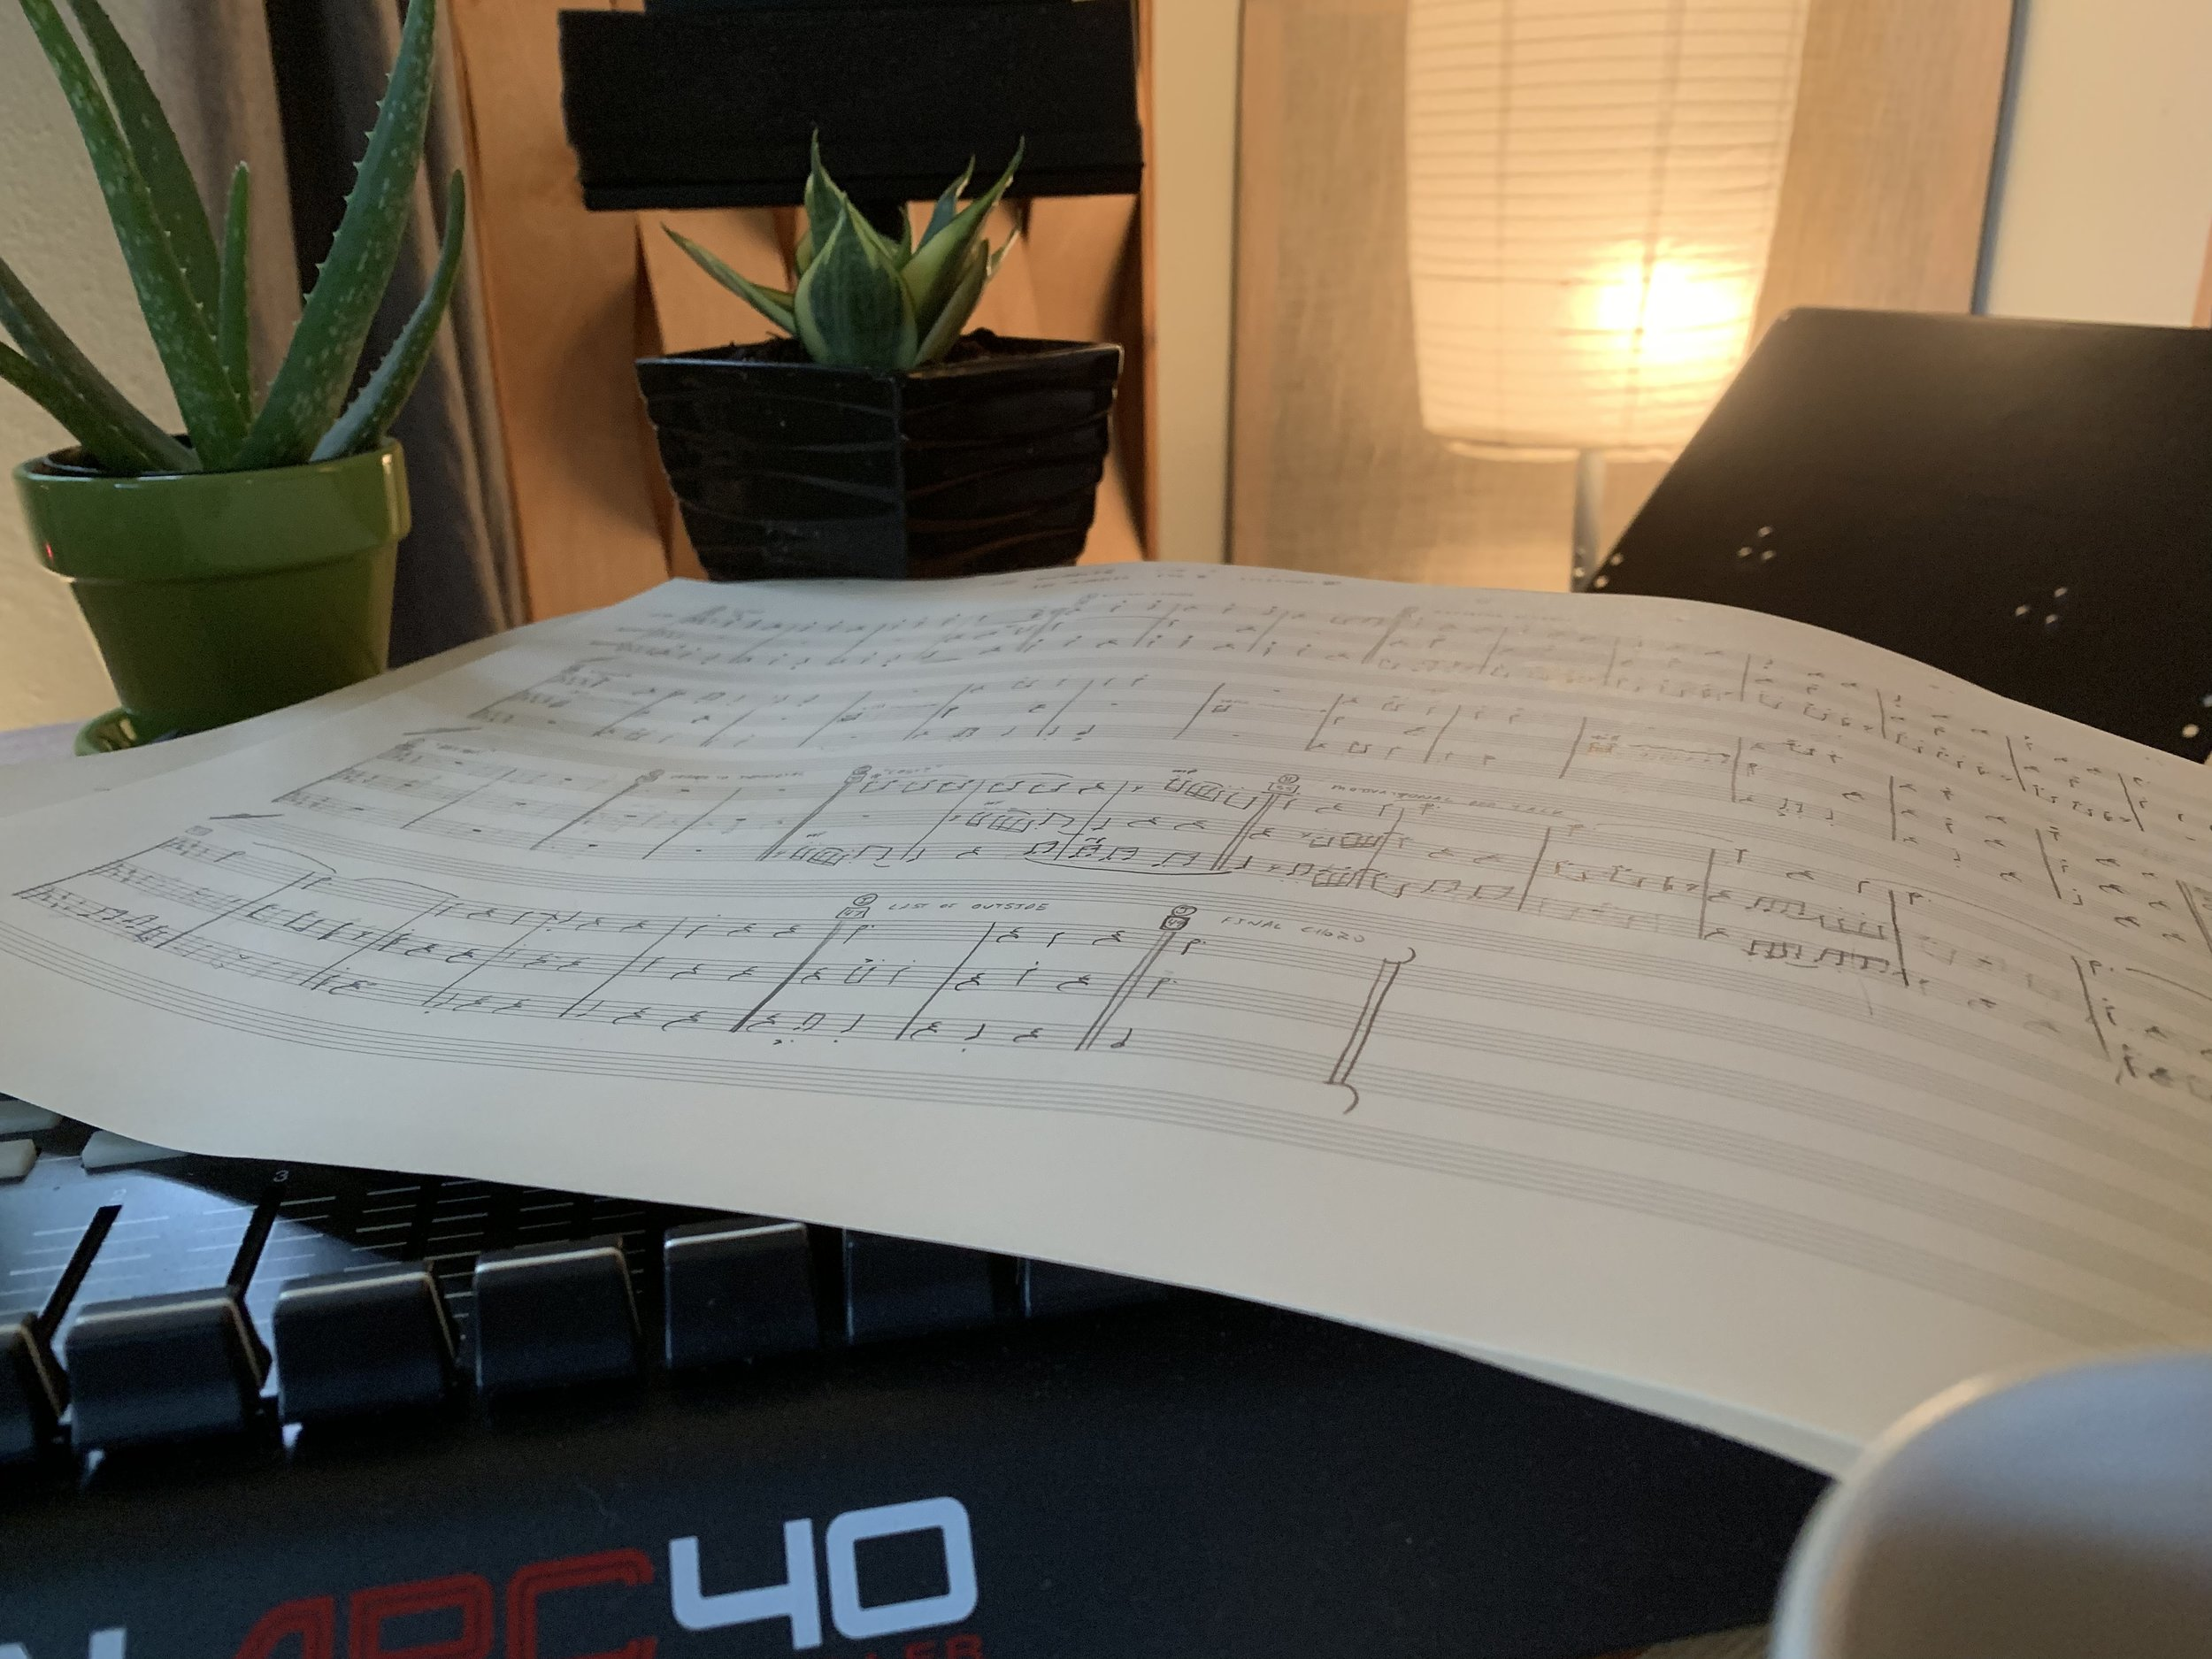 I love it when I get to spend an entire week just writing music.